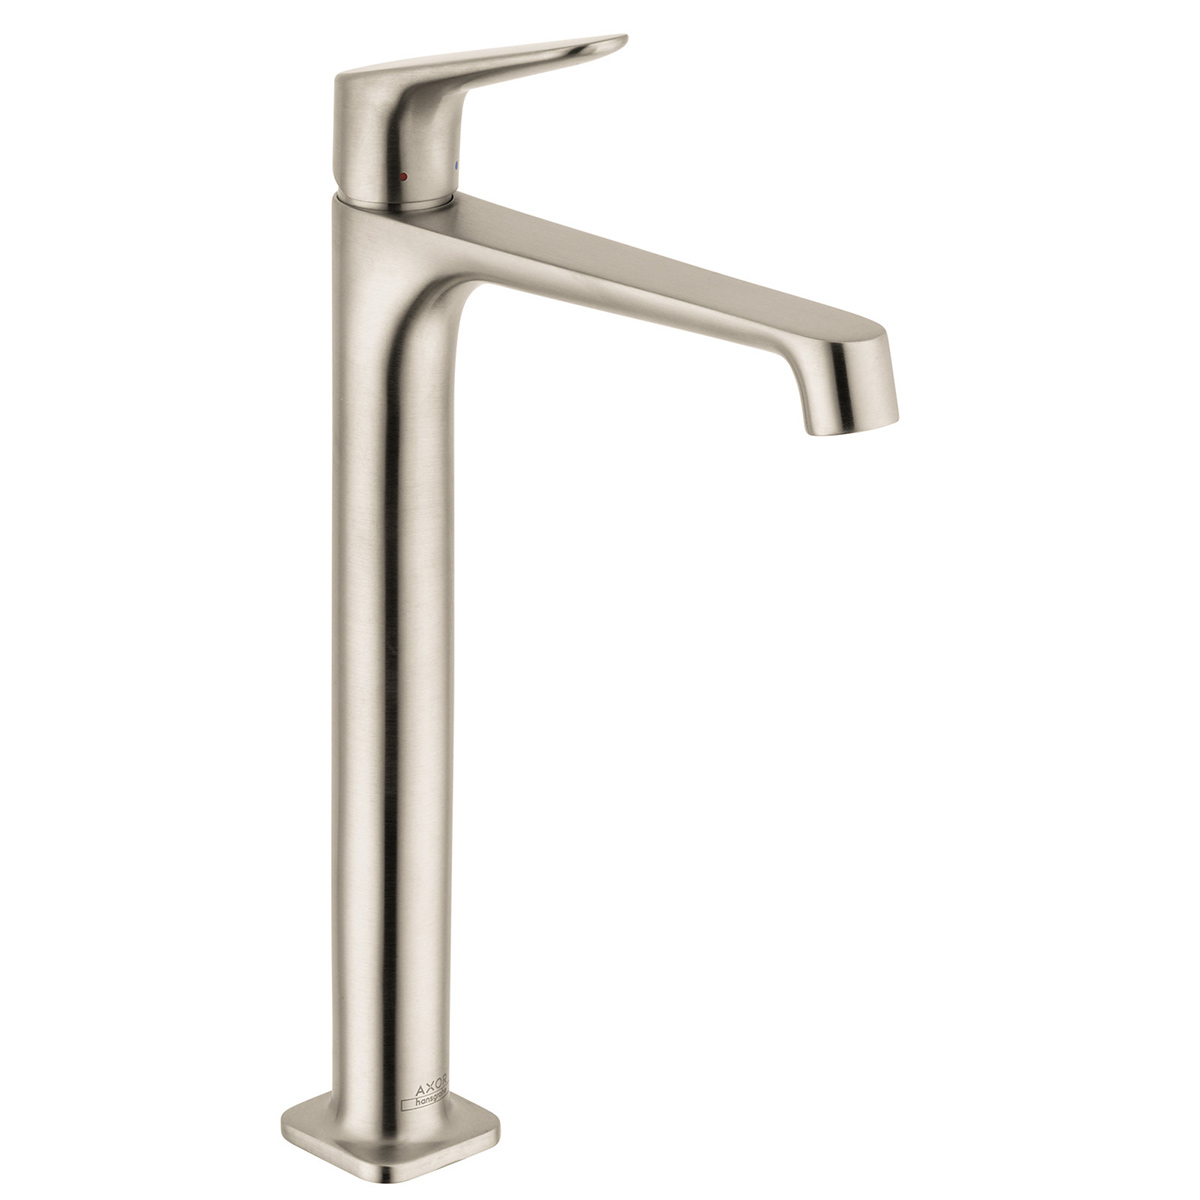 Hansgrohe Citterio M Bath4all Hansgrohe 34120821 Brushed Nickel Axor Citterio M